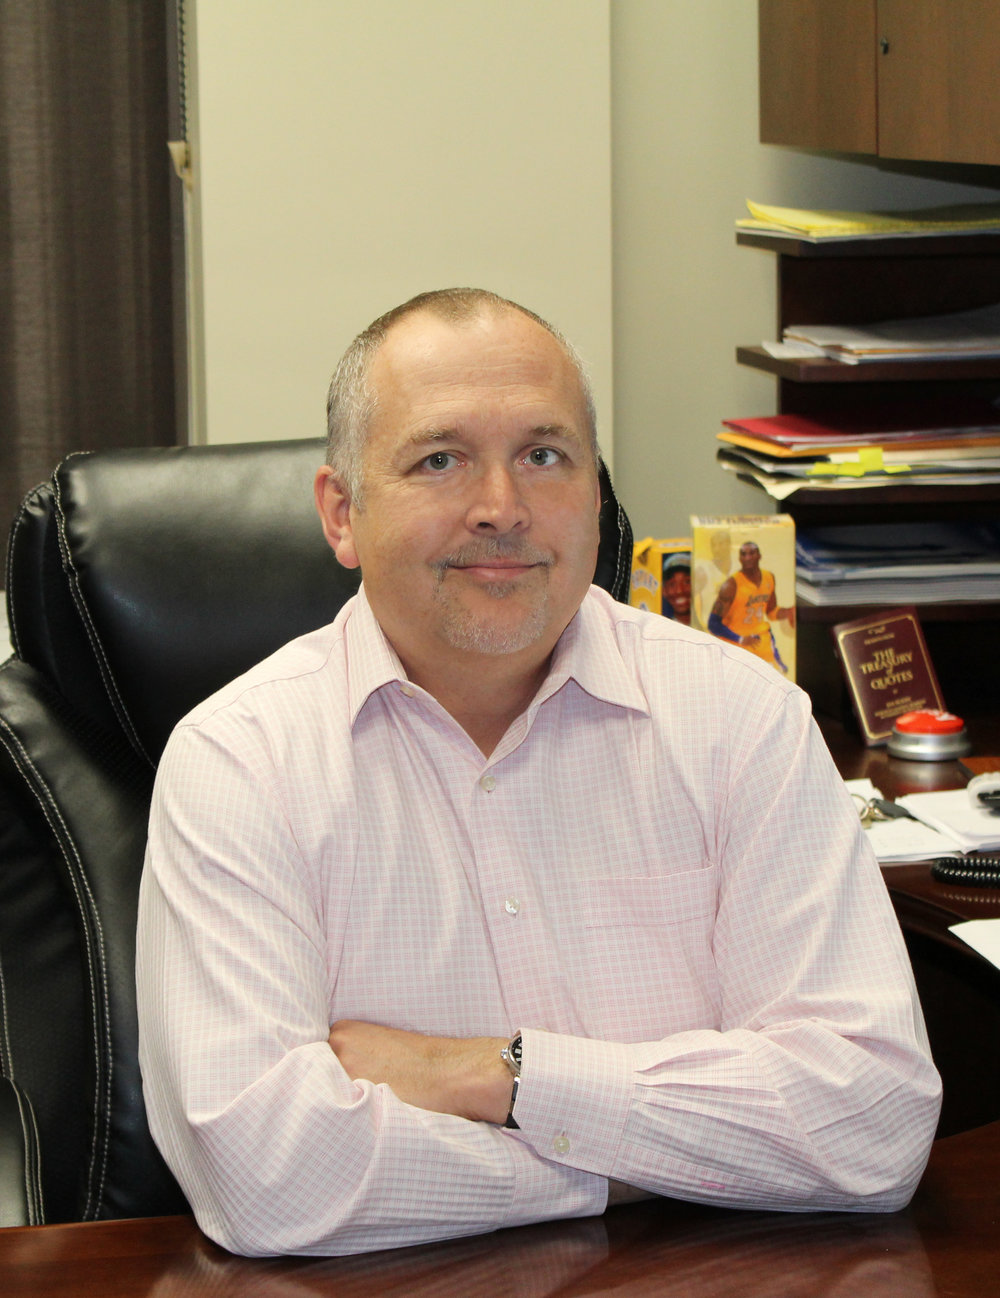 Robert Holliday, PRMG Chief Operations Officer